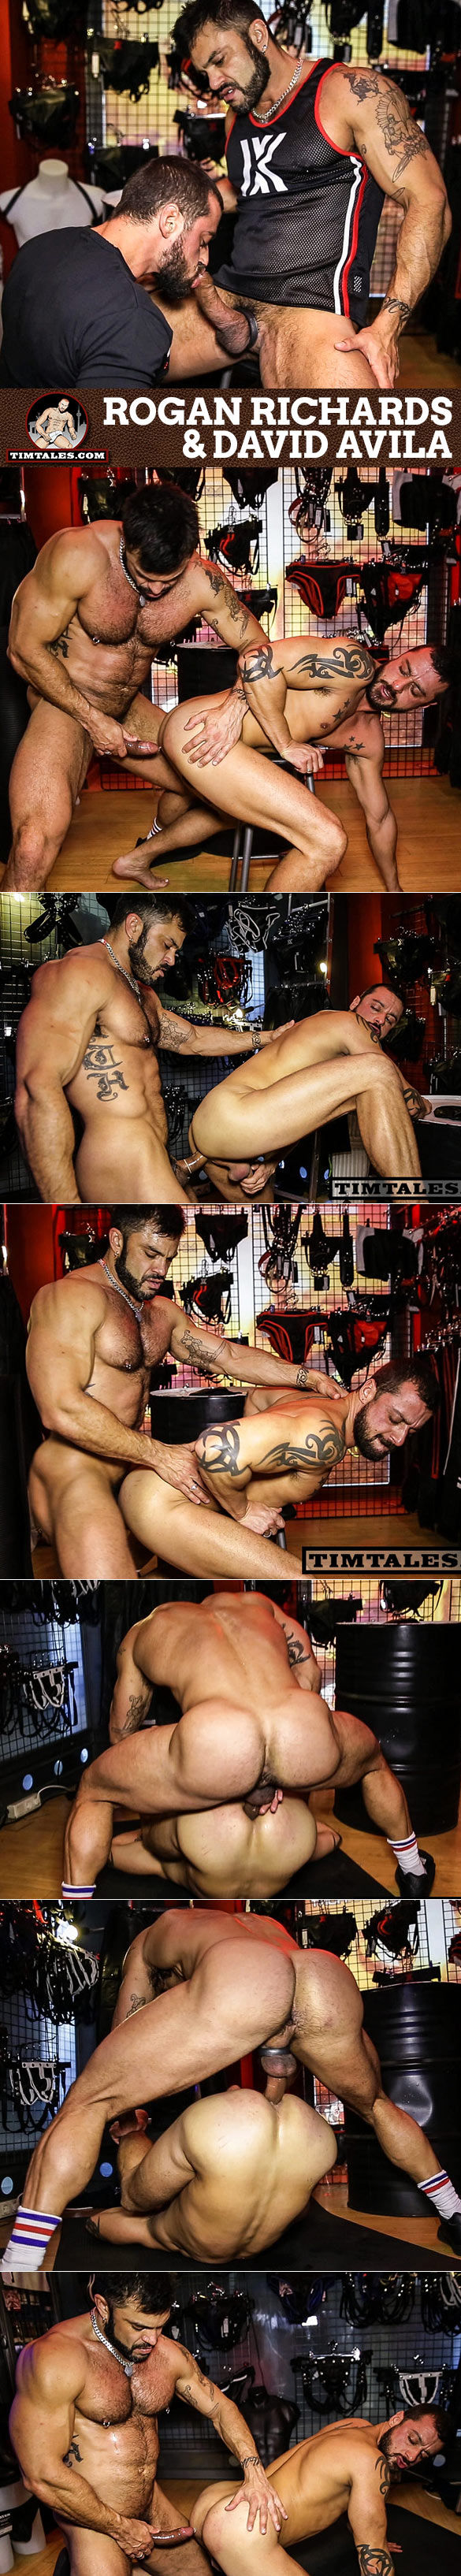 TimTales: Rogan Richards slams David Avila